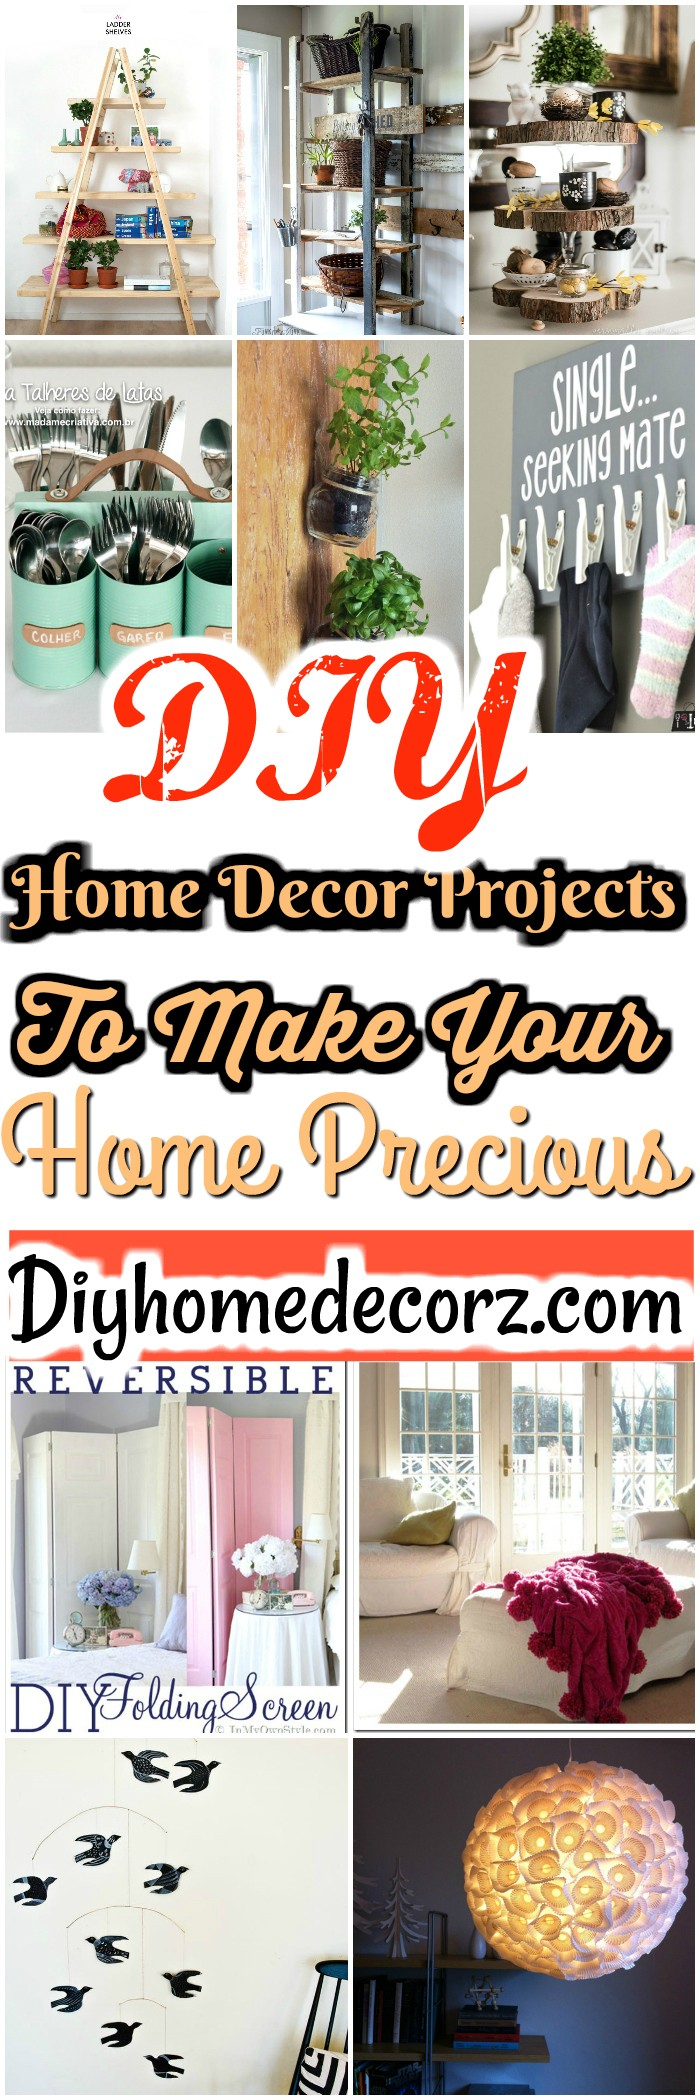 Diy home decor DIY Home Decor Projects To Make Your Home Precious